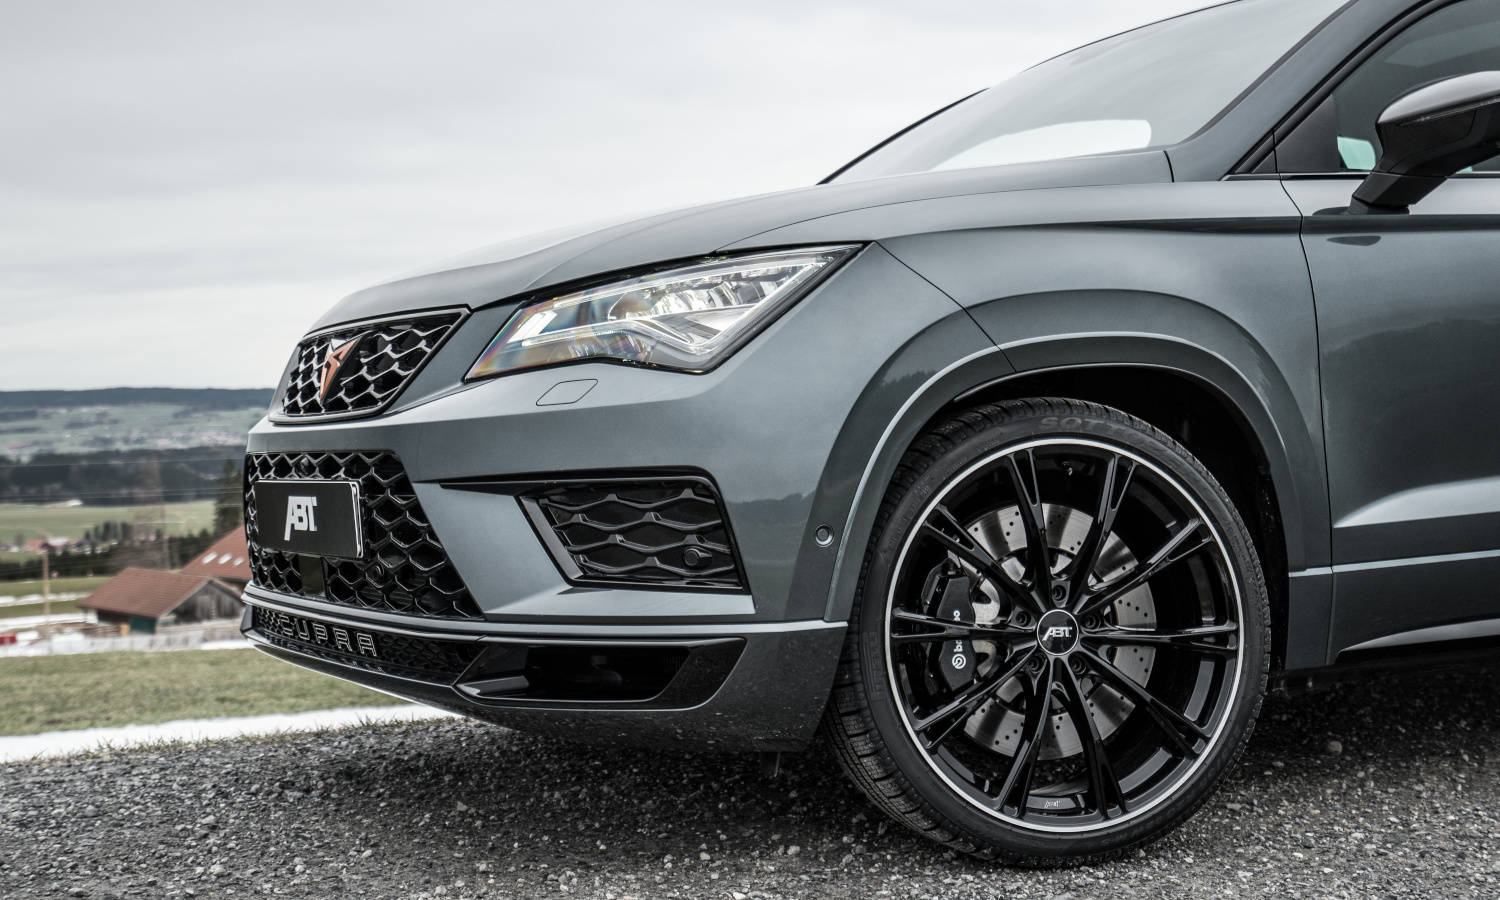 Cupra-Ateca-Limited-Edition-by-ABT-7